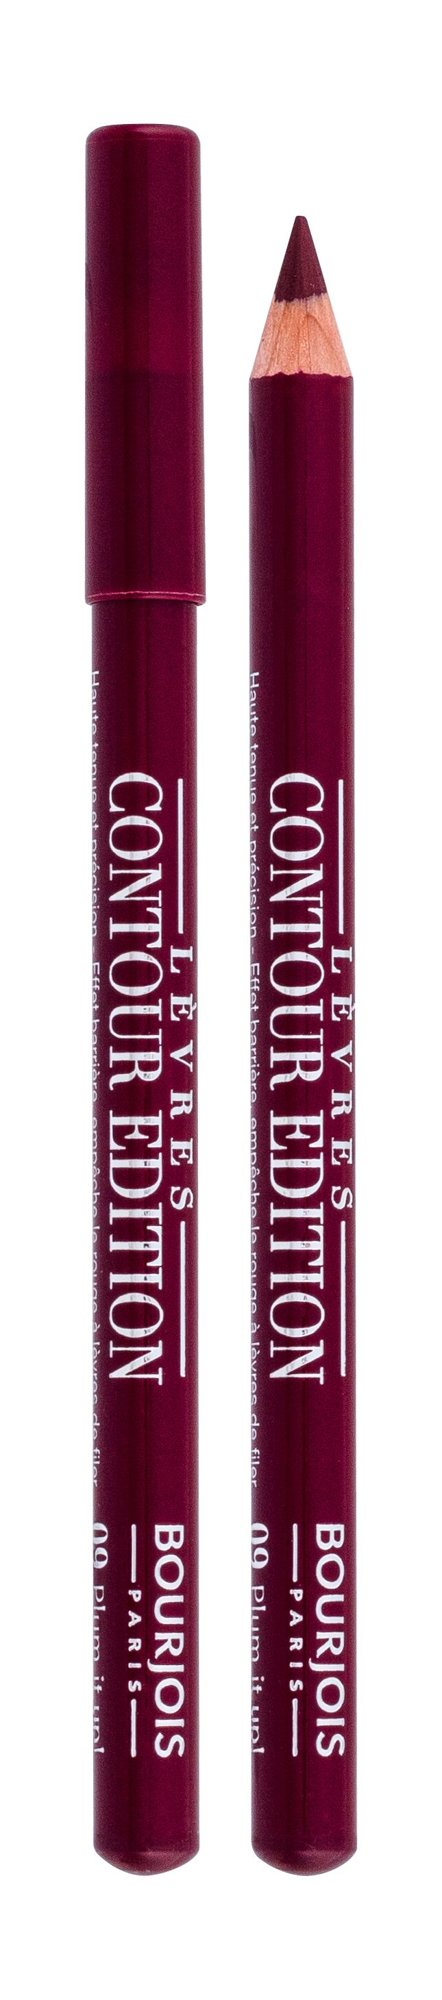 BOURJOIS Paris Contour Edition Lip Pencil 1,14ml 09 Plum It Up!